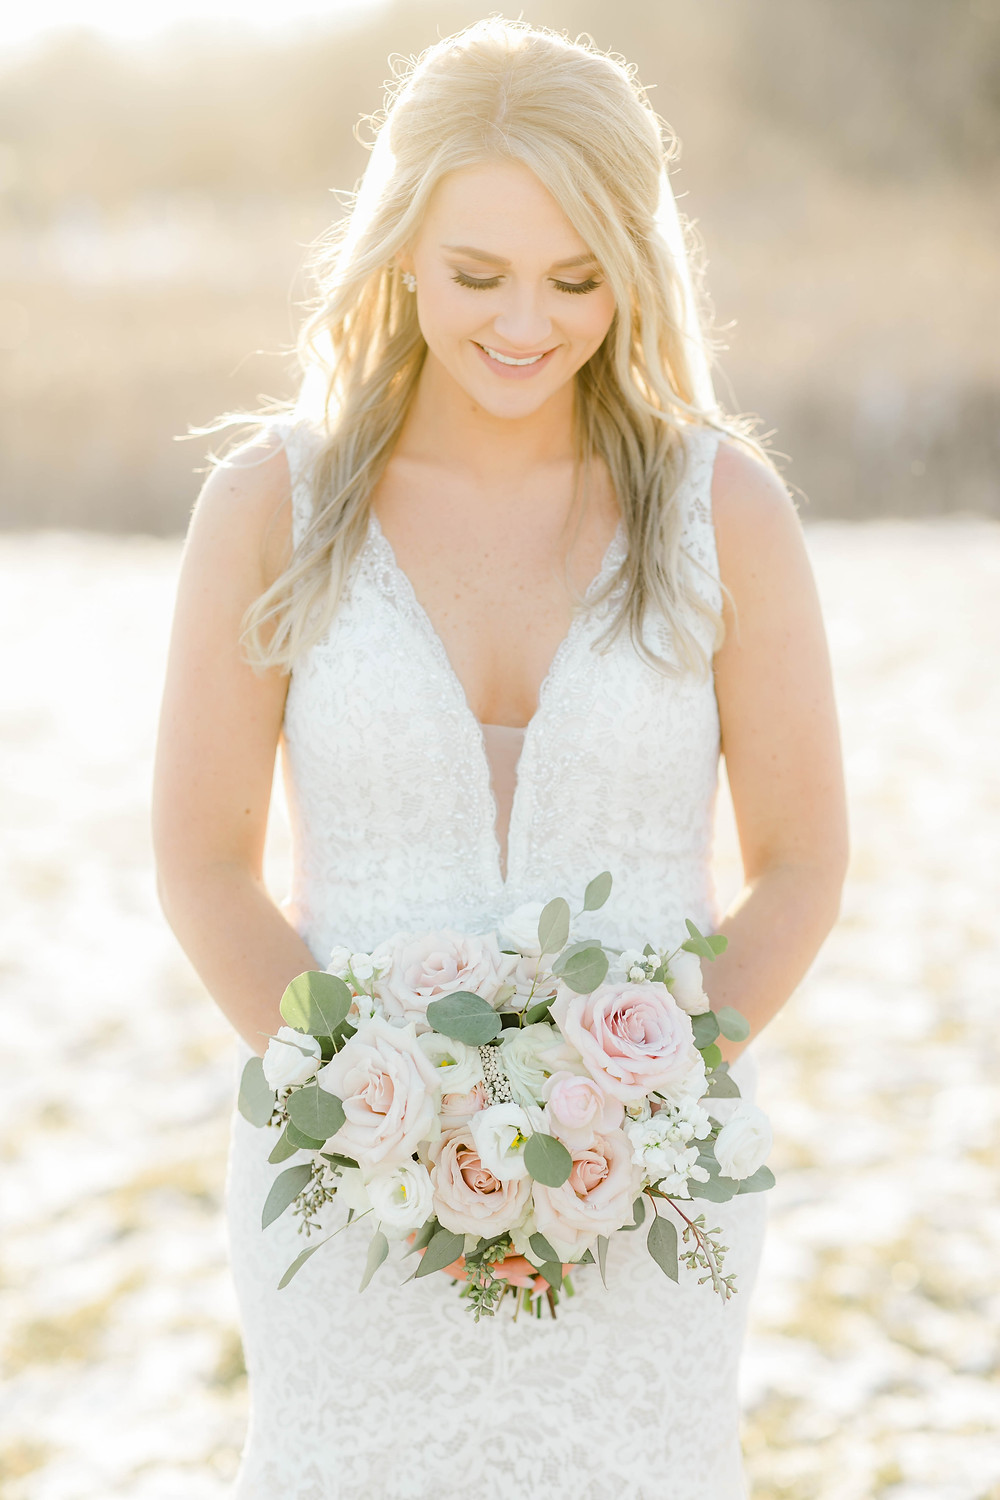 Bride with floral bouquet of blush roses, ranunculus, lisianthus, stock, rice flower, and eucalyptus by Studio Bloom Iowa